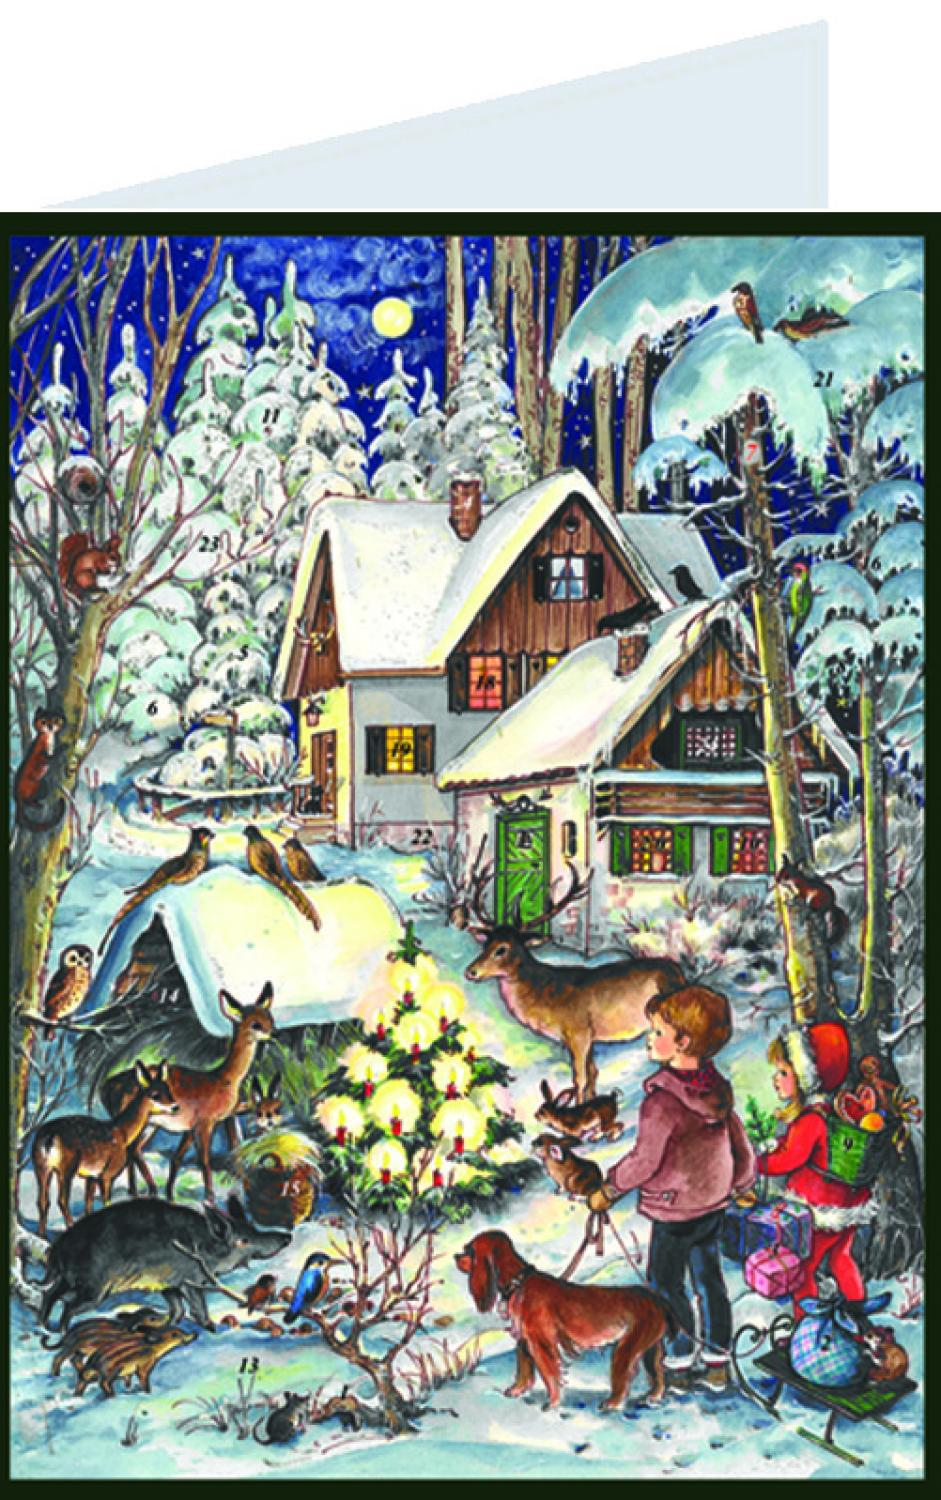 ADV409 - Sellmer Postcard Advent - Forest Animals Scene - 5.75